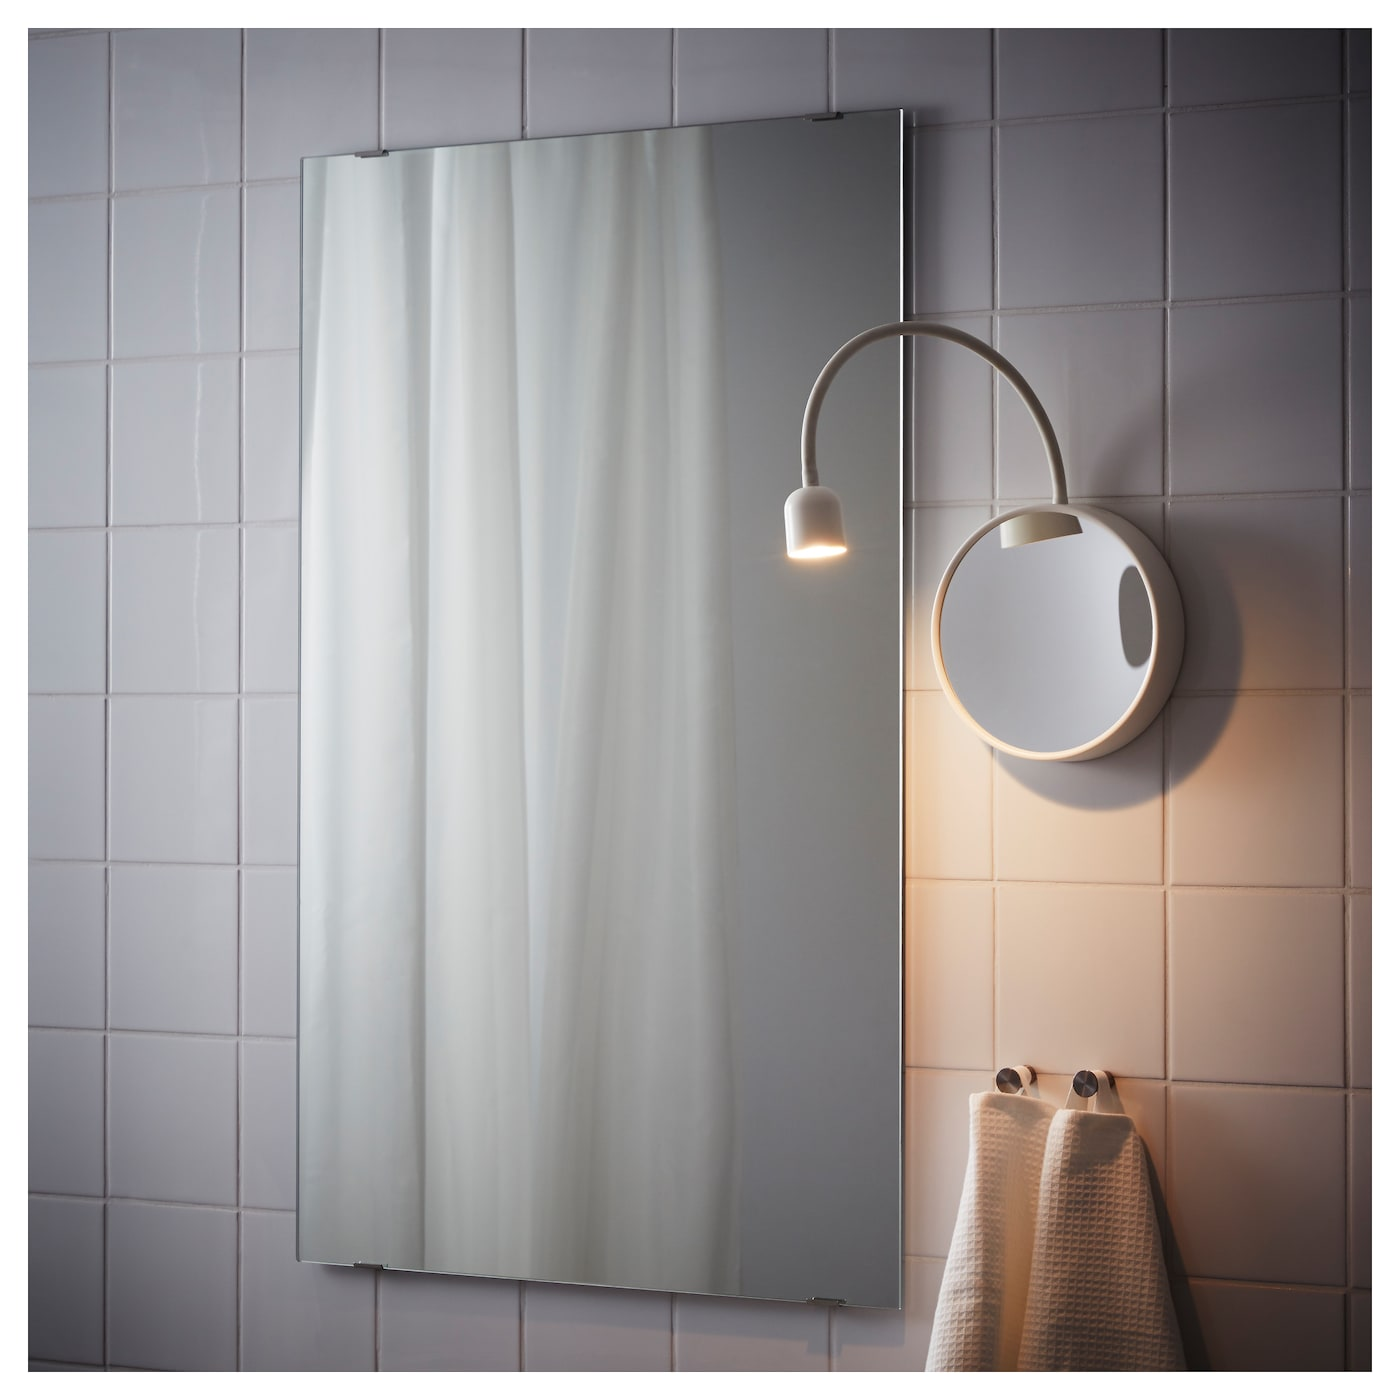 Led Wall Lamp Ikea: BLÅVIK LED Wall Lamp With Mirror Battery-operated White